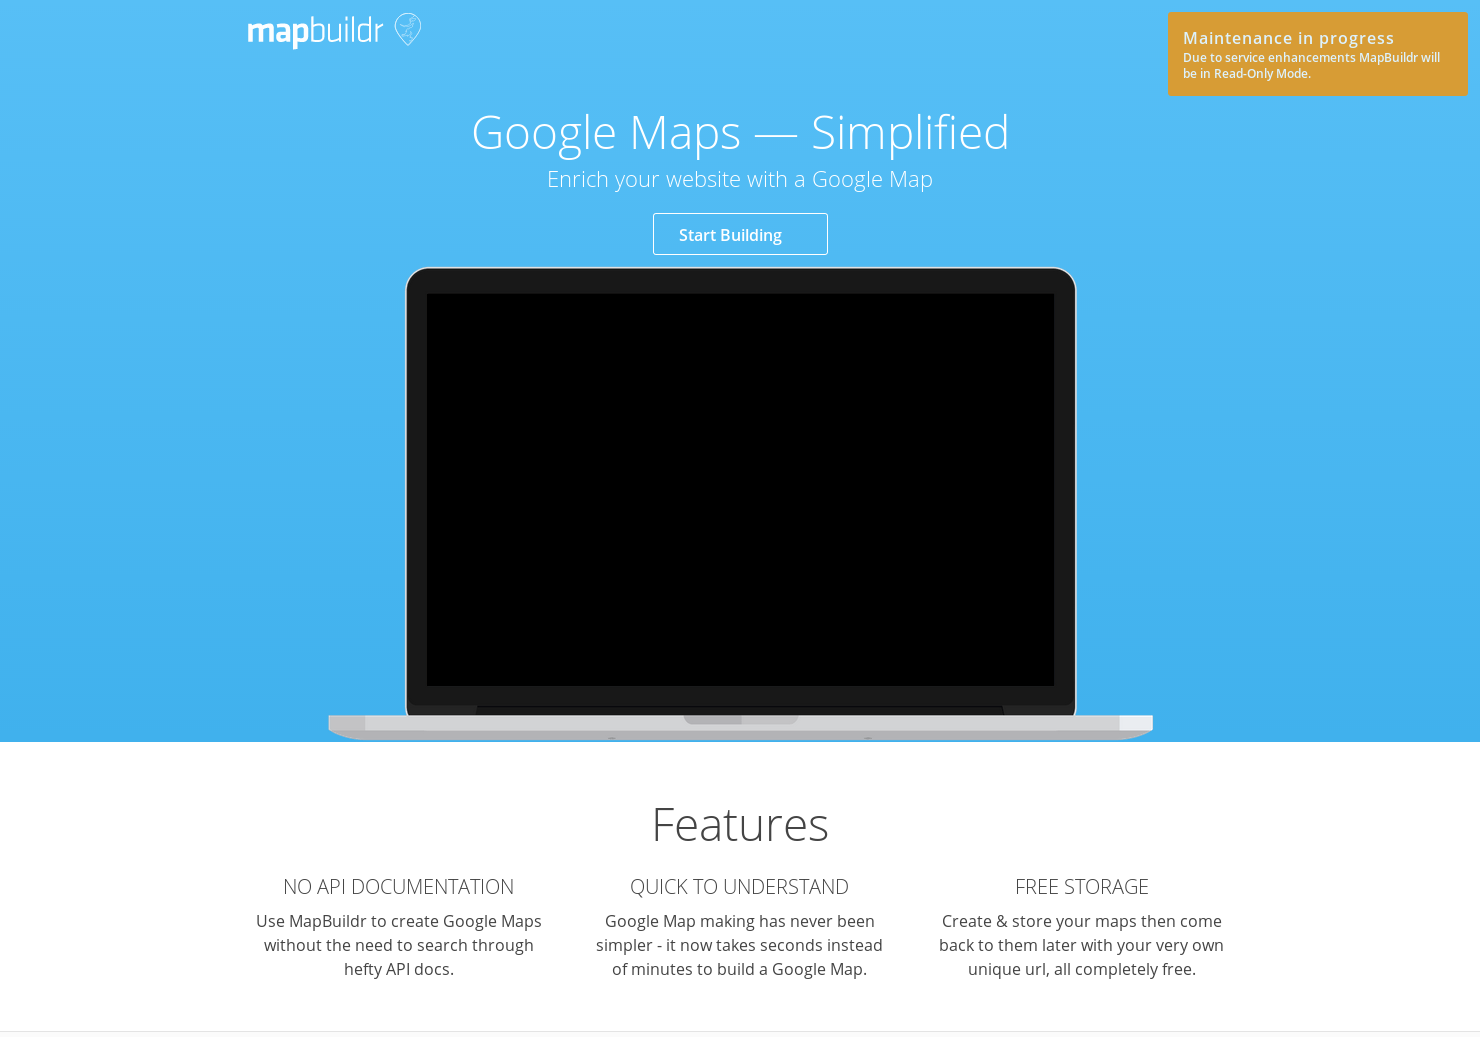 Mapbuildr - Create Google Maps without the need to search